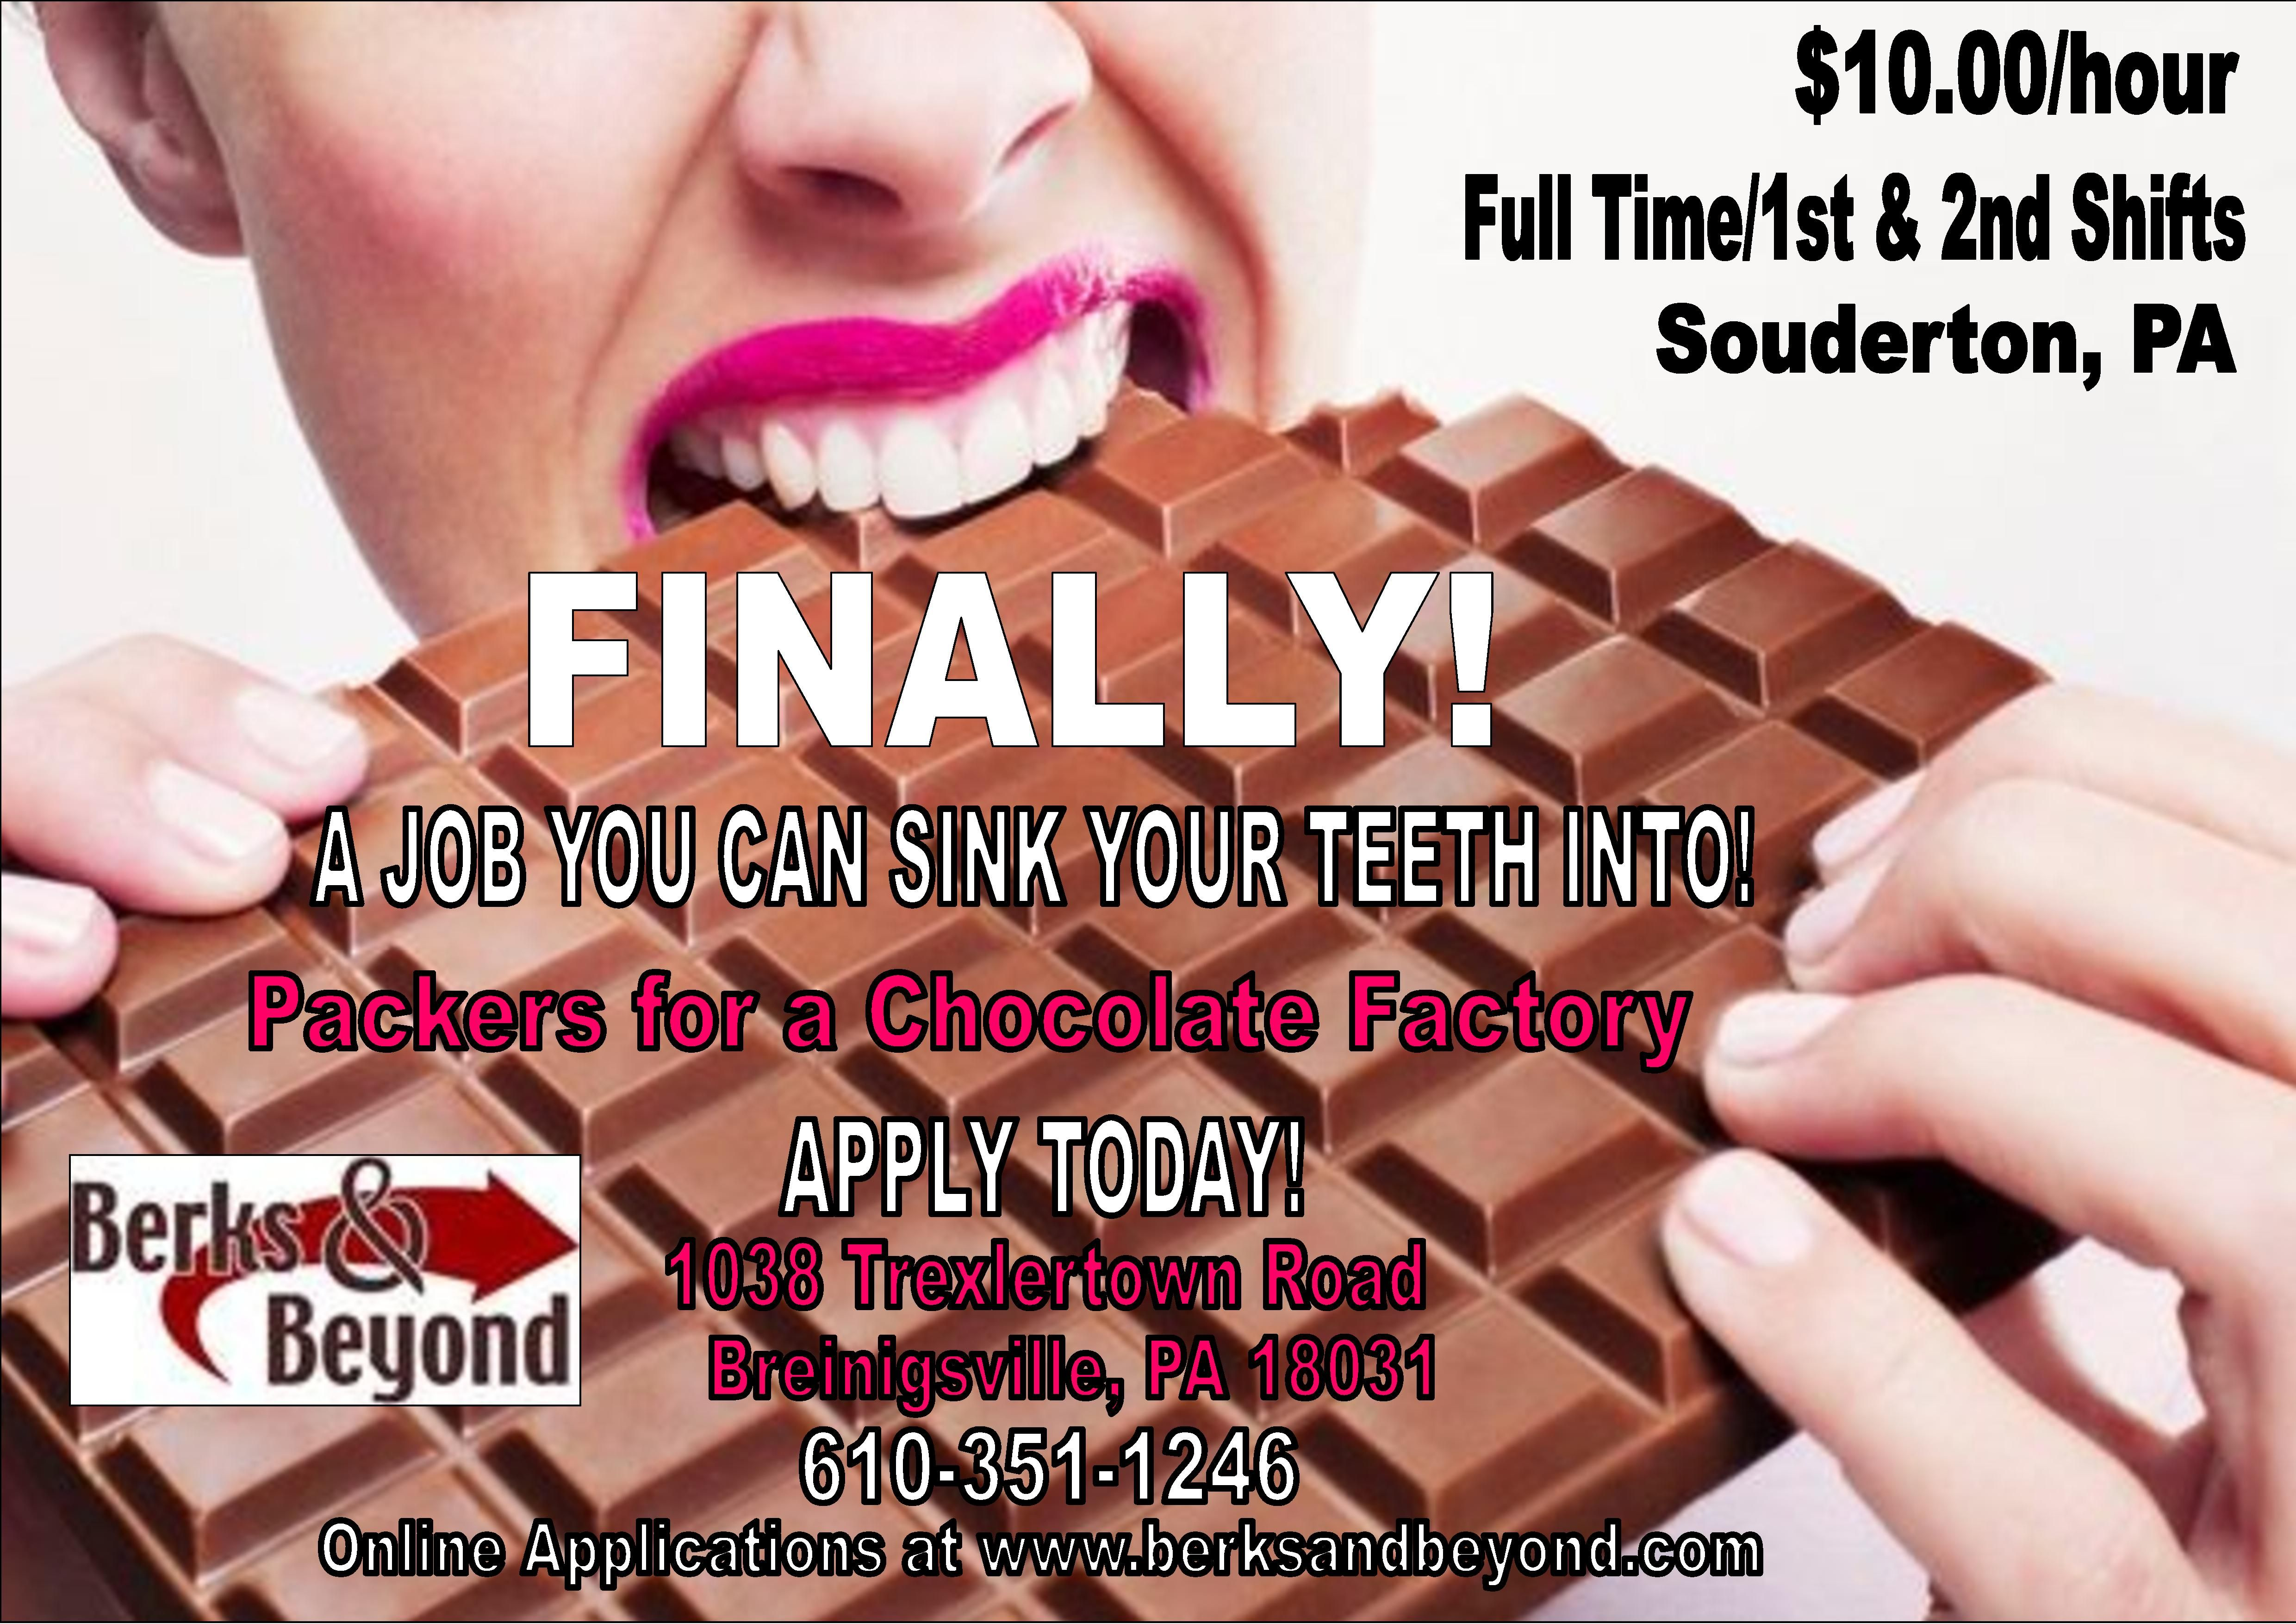 Hiring for 1st and 2ndshift packers for a souderton